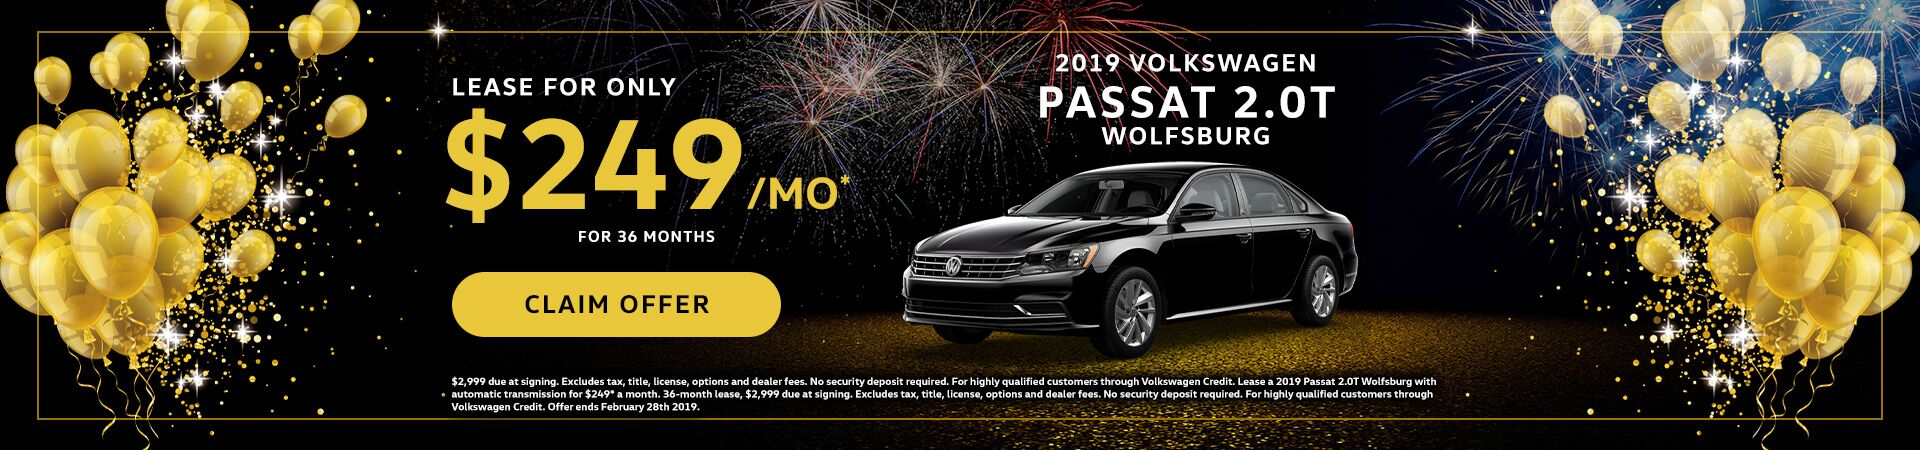 2019 VW Passat January Special